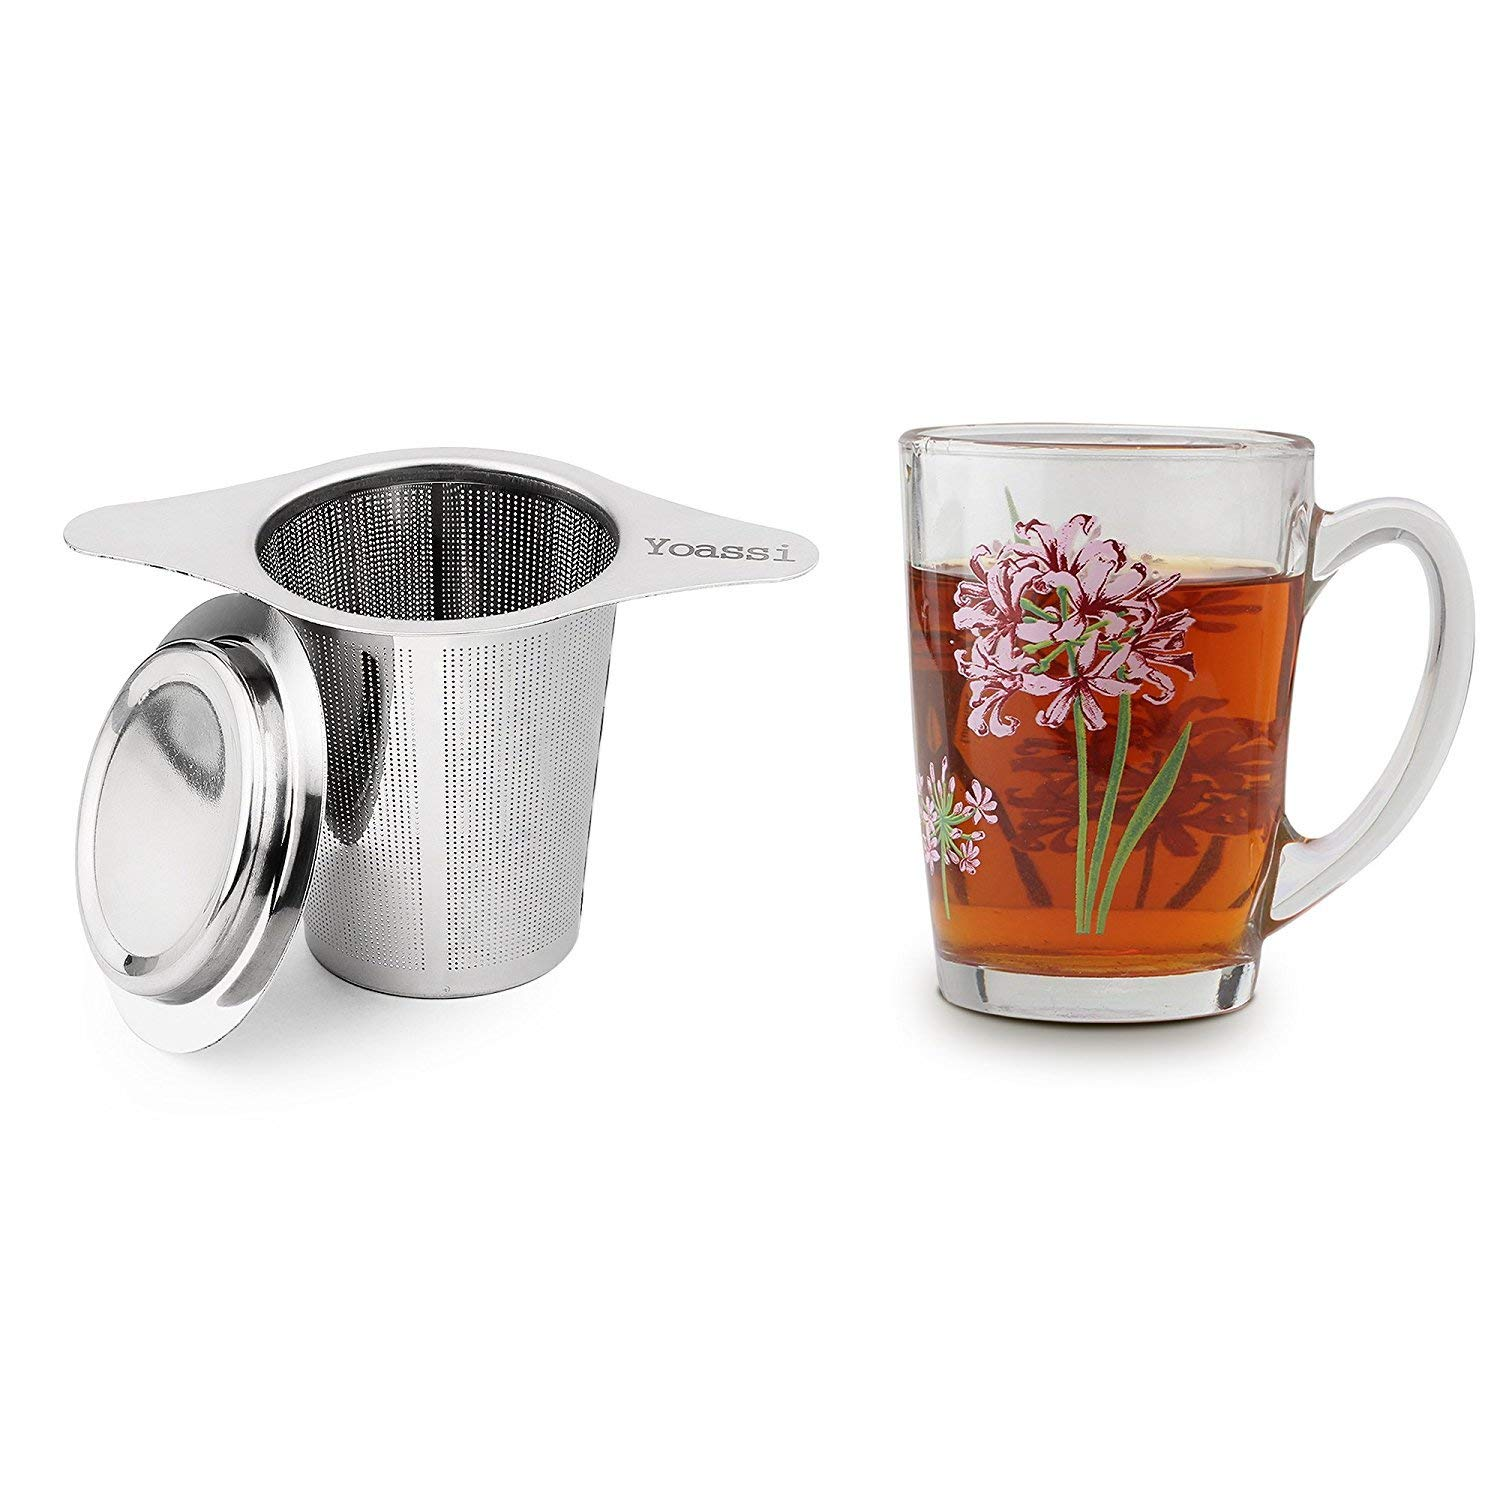 Yoassi 2 Pack FDA Approved 8/18 Stainless Steel Tea Infuser Mesh Strainer with Large Capacity & Perfect Size Double Handles for Hanging on Teapots, Mugs,Cups to steep Loose Leaf Tea and Coffee by IPOW (Image #3)